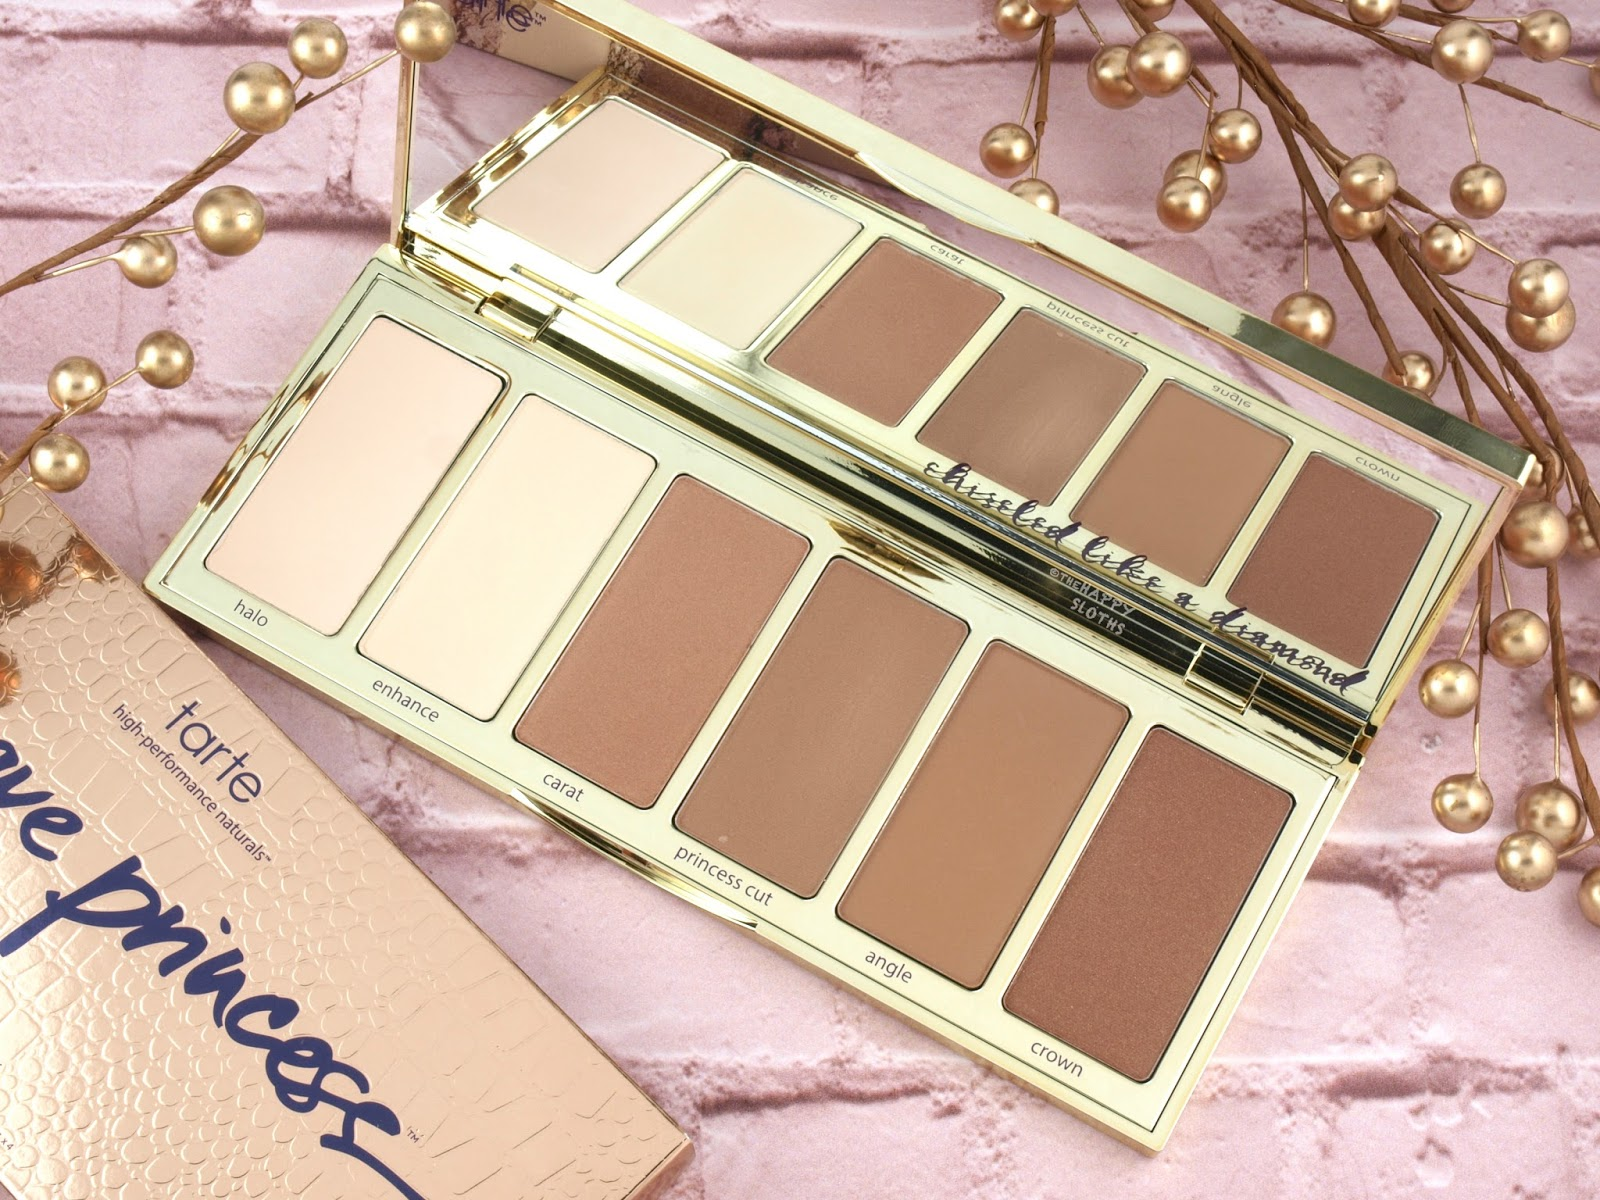 The_Happy_Sloths_Reviews_park_ave_princess_chisel_palette_From_Tarte_3.jpg